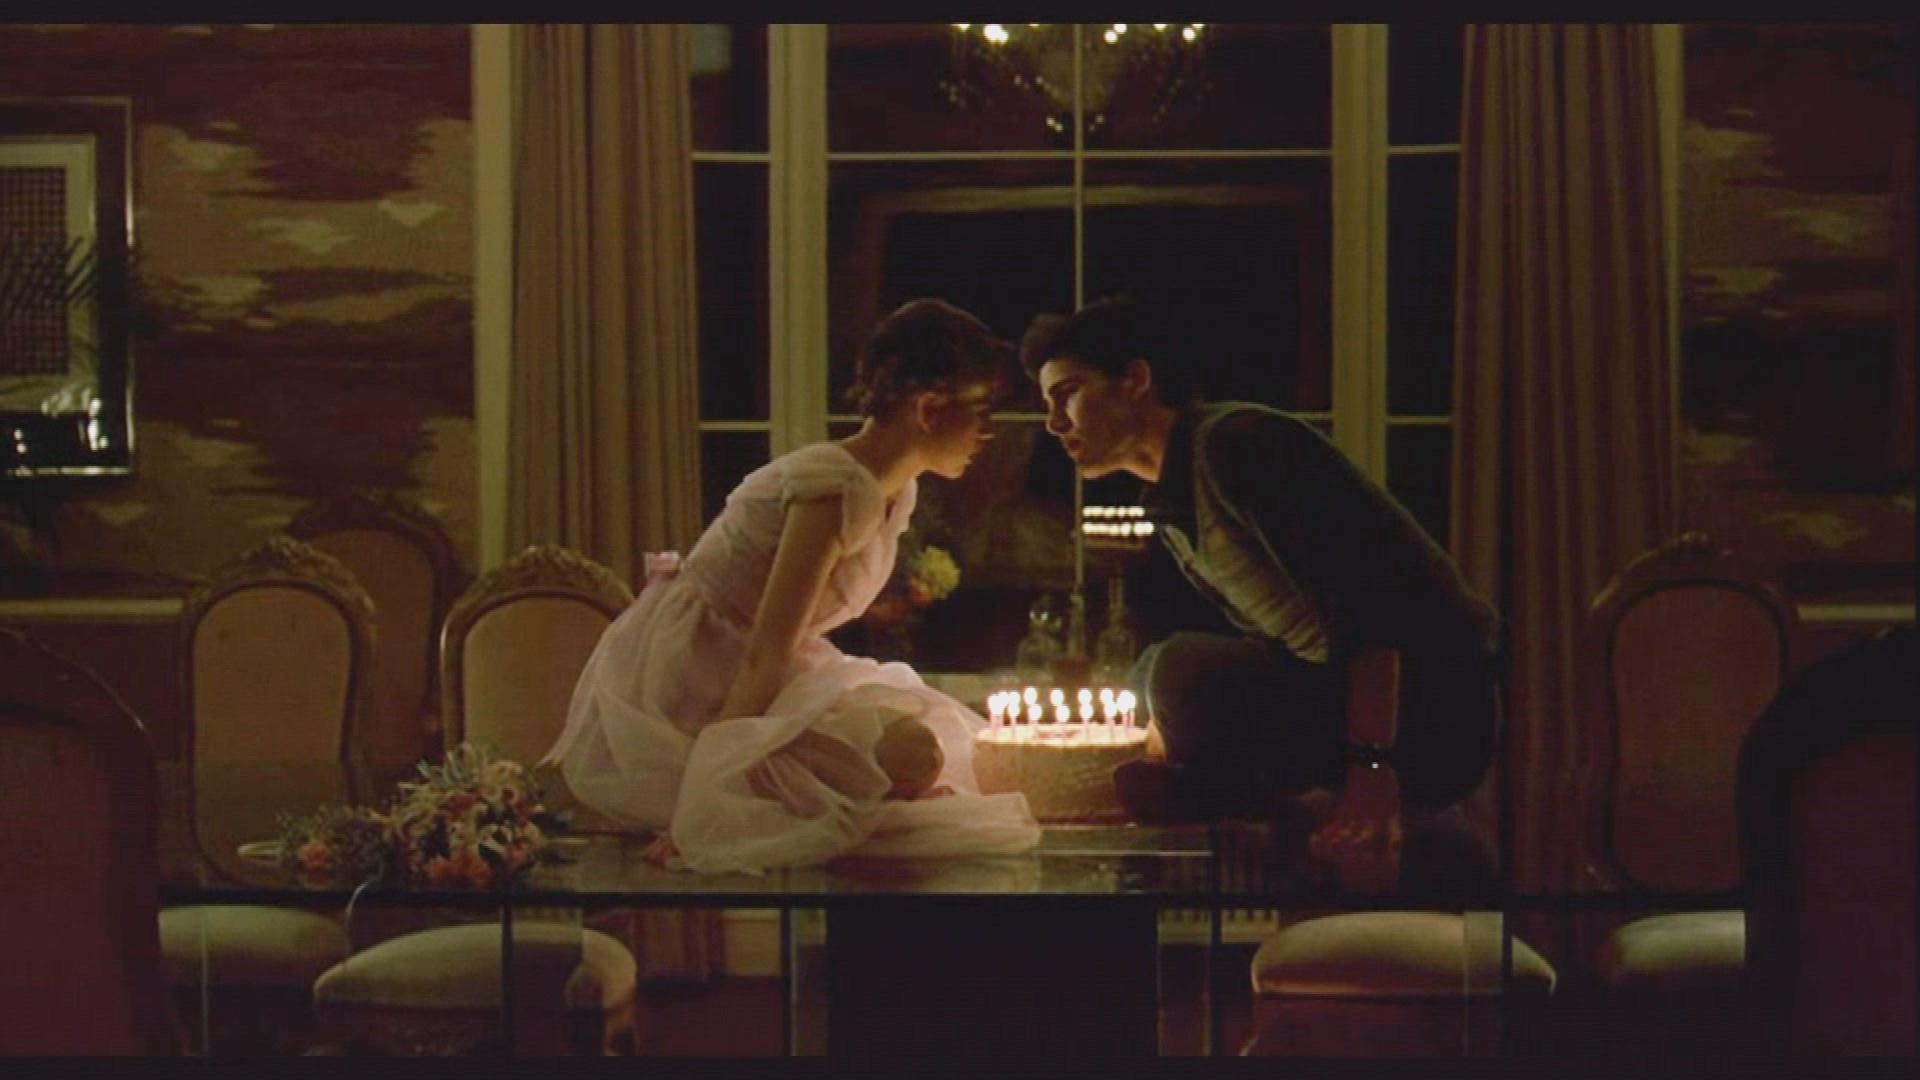 Sixteen Candles Turns 35 Cast Spills Behind The Scenes Secrets Exclusive Entertainment Tonight